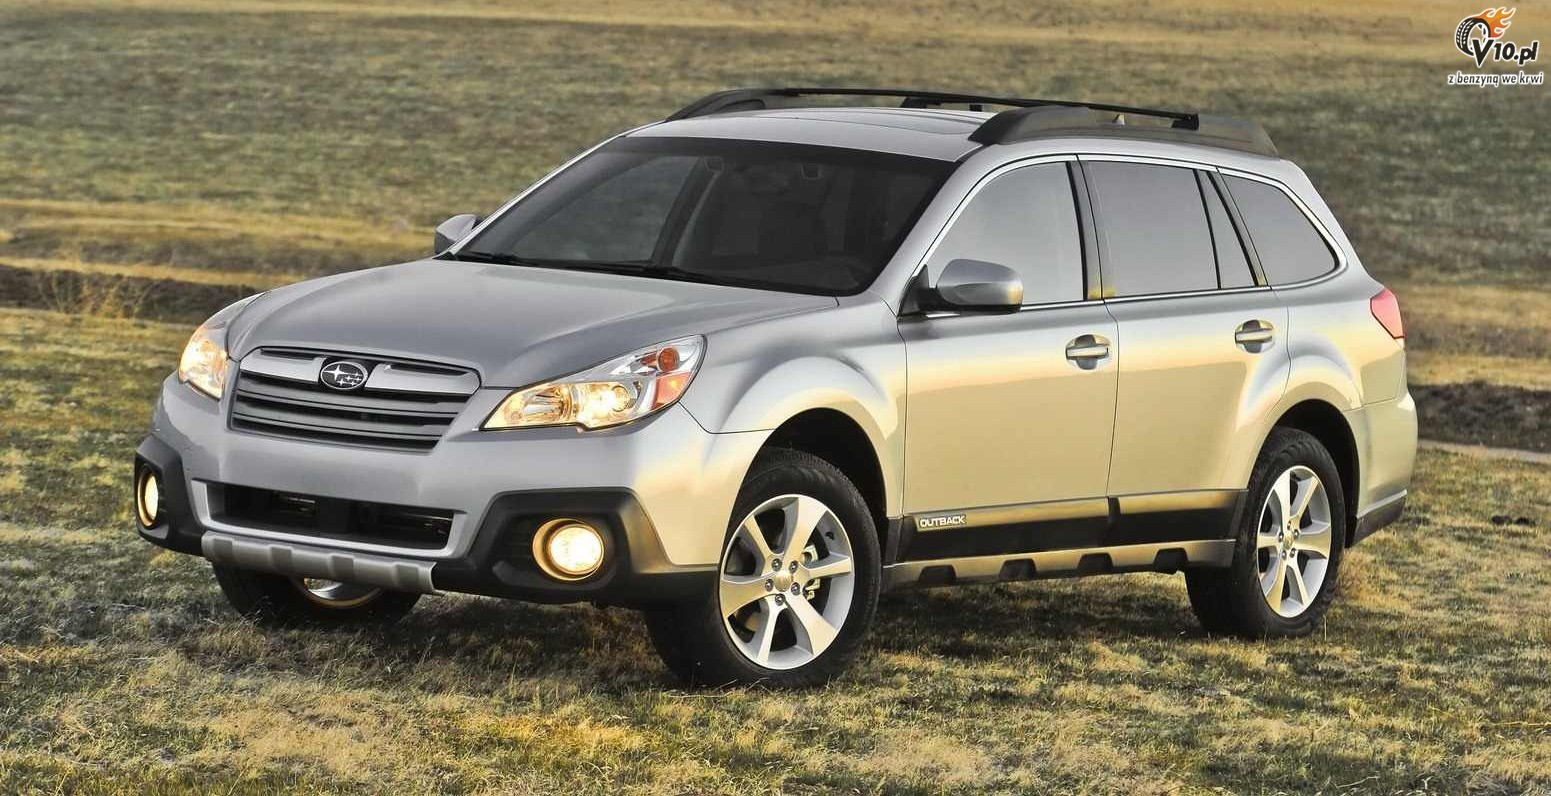 2014 Subaru Outback source: http://www.autospost.com/cat/2014-rdx-vs